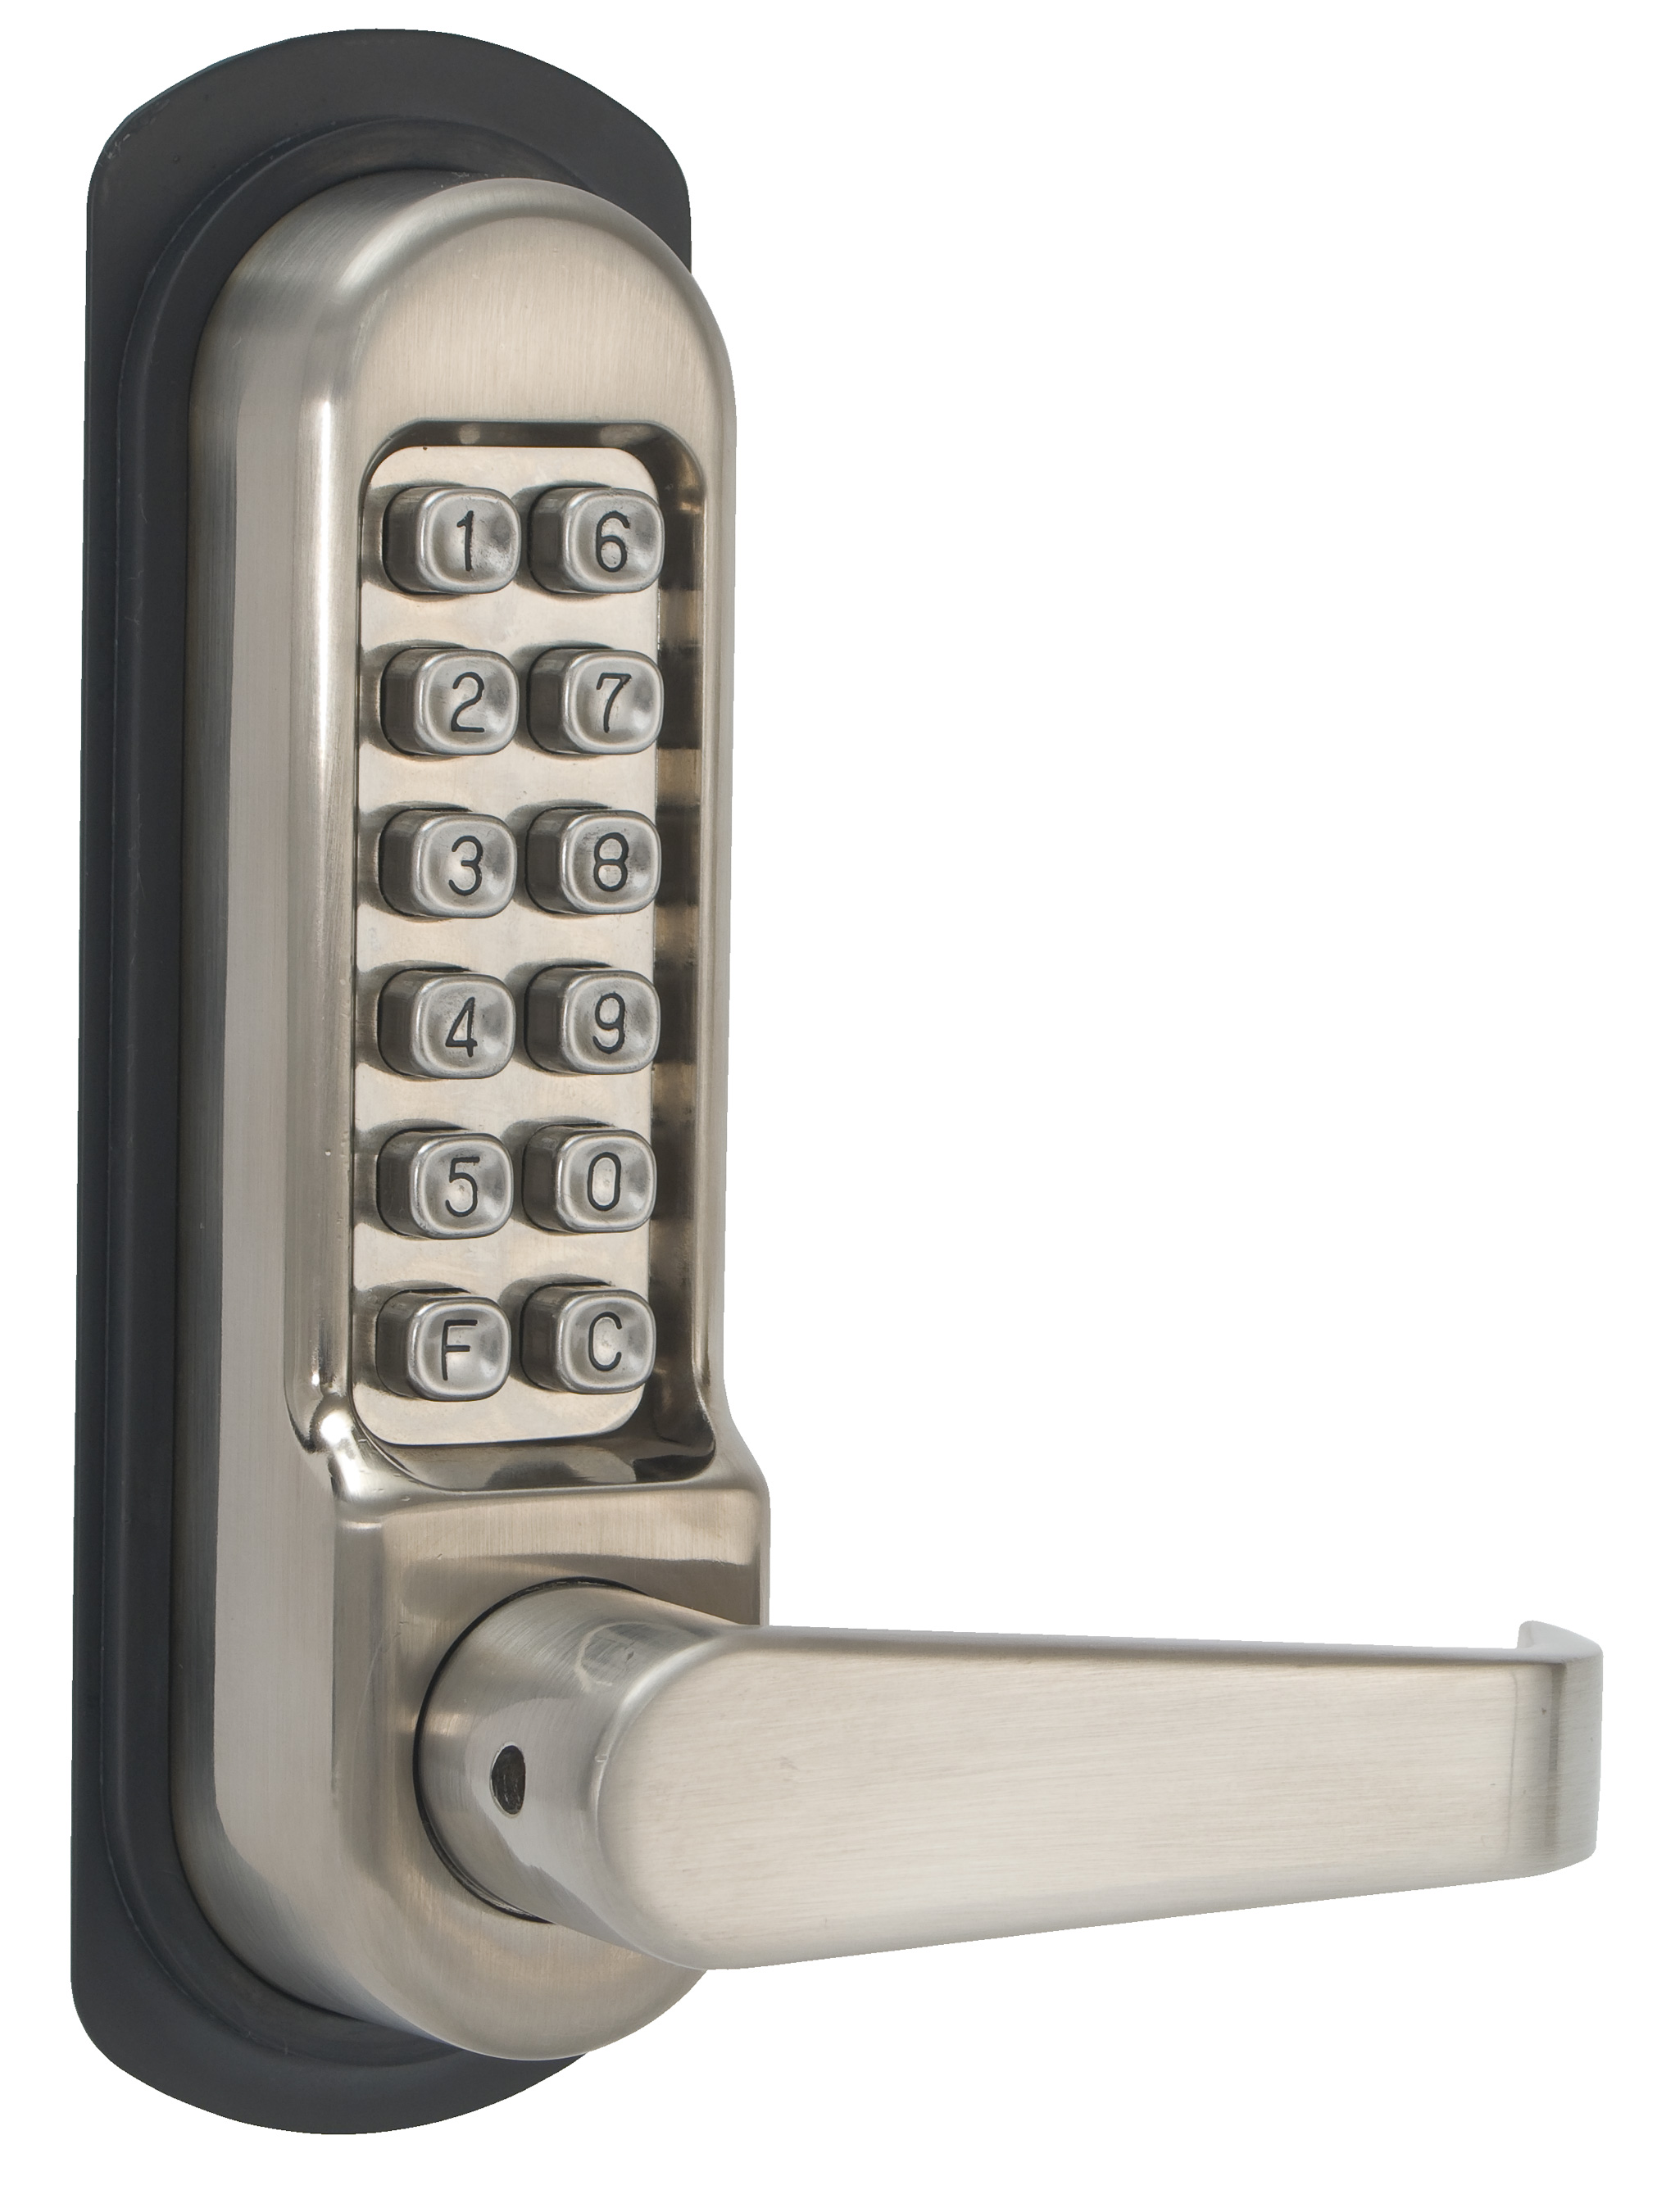 ball pack door code com satin knob deadbolt s style walmart doors keyed combo nickel entry ip brink for locks